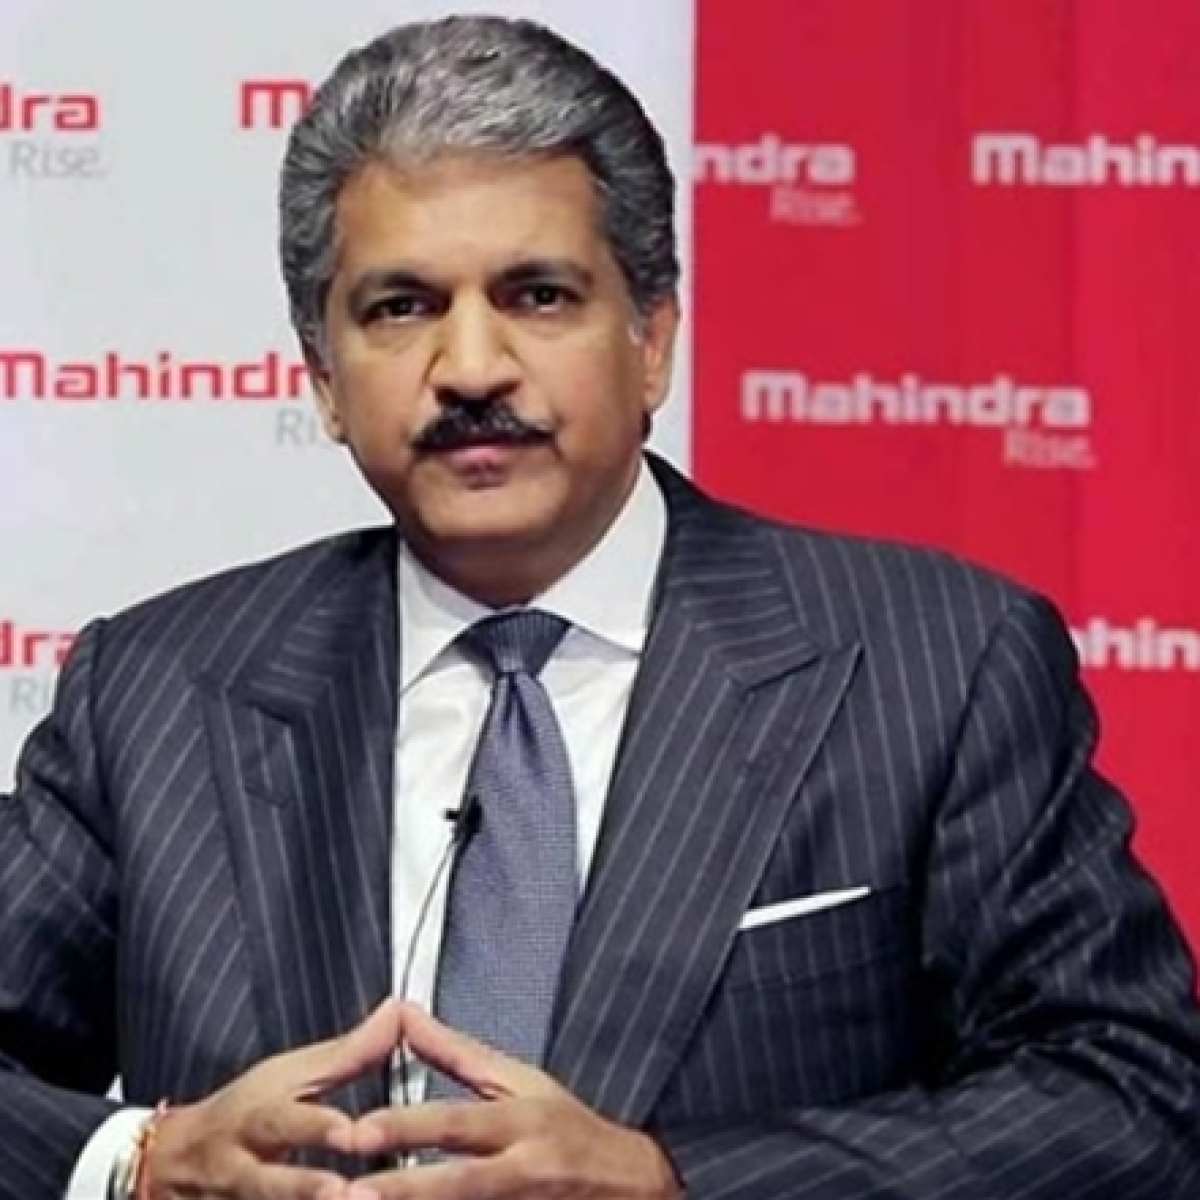 Anand Mahindra to step down as Executive Chairman as company announces board succession plan